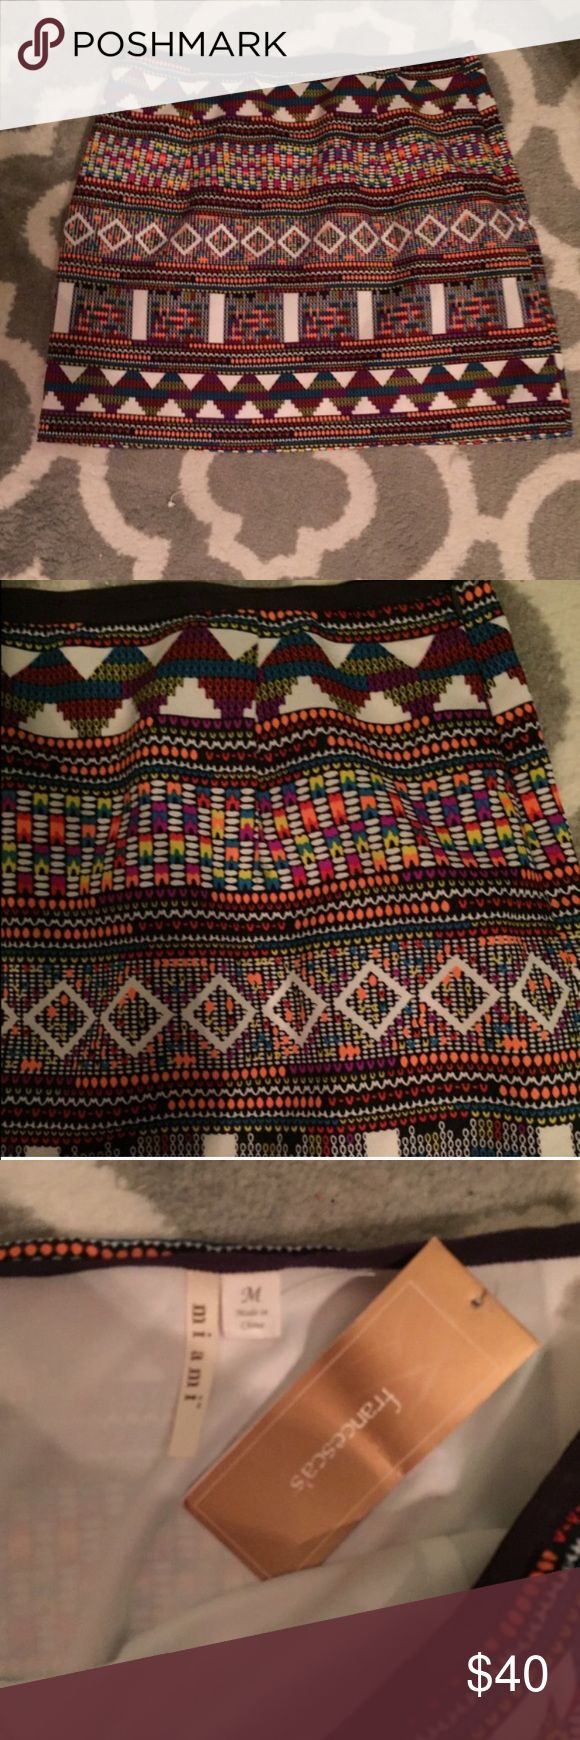 Francesca's collection tribal print skirt med NWT Francesca's collection tribal patterned mini skirt with zip up side NWT. Size medium. Perfect condition, pattern also on back. Very bright and colorful. Francesca's Collections Skirts Mini